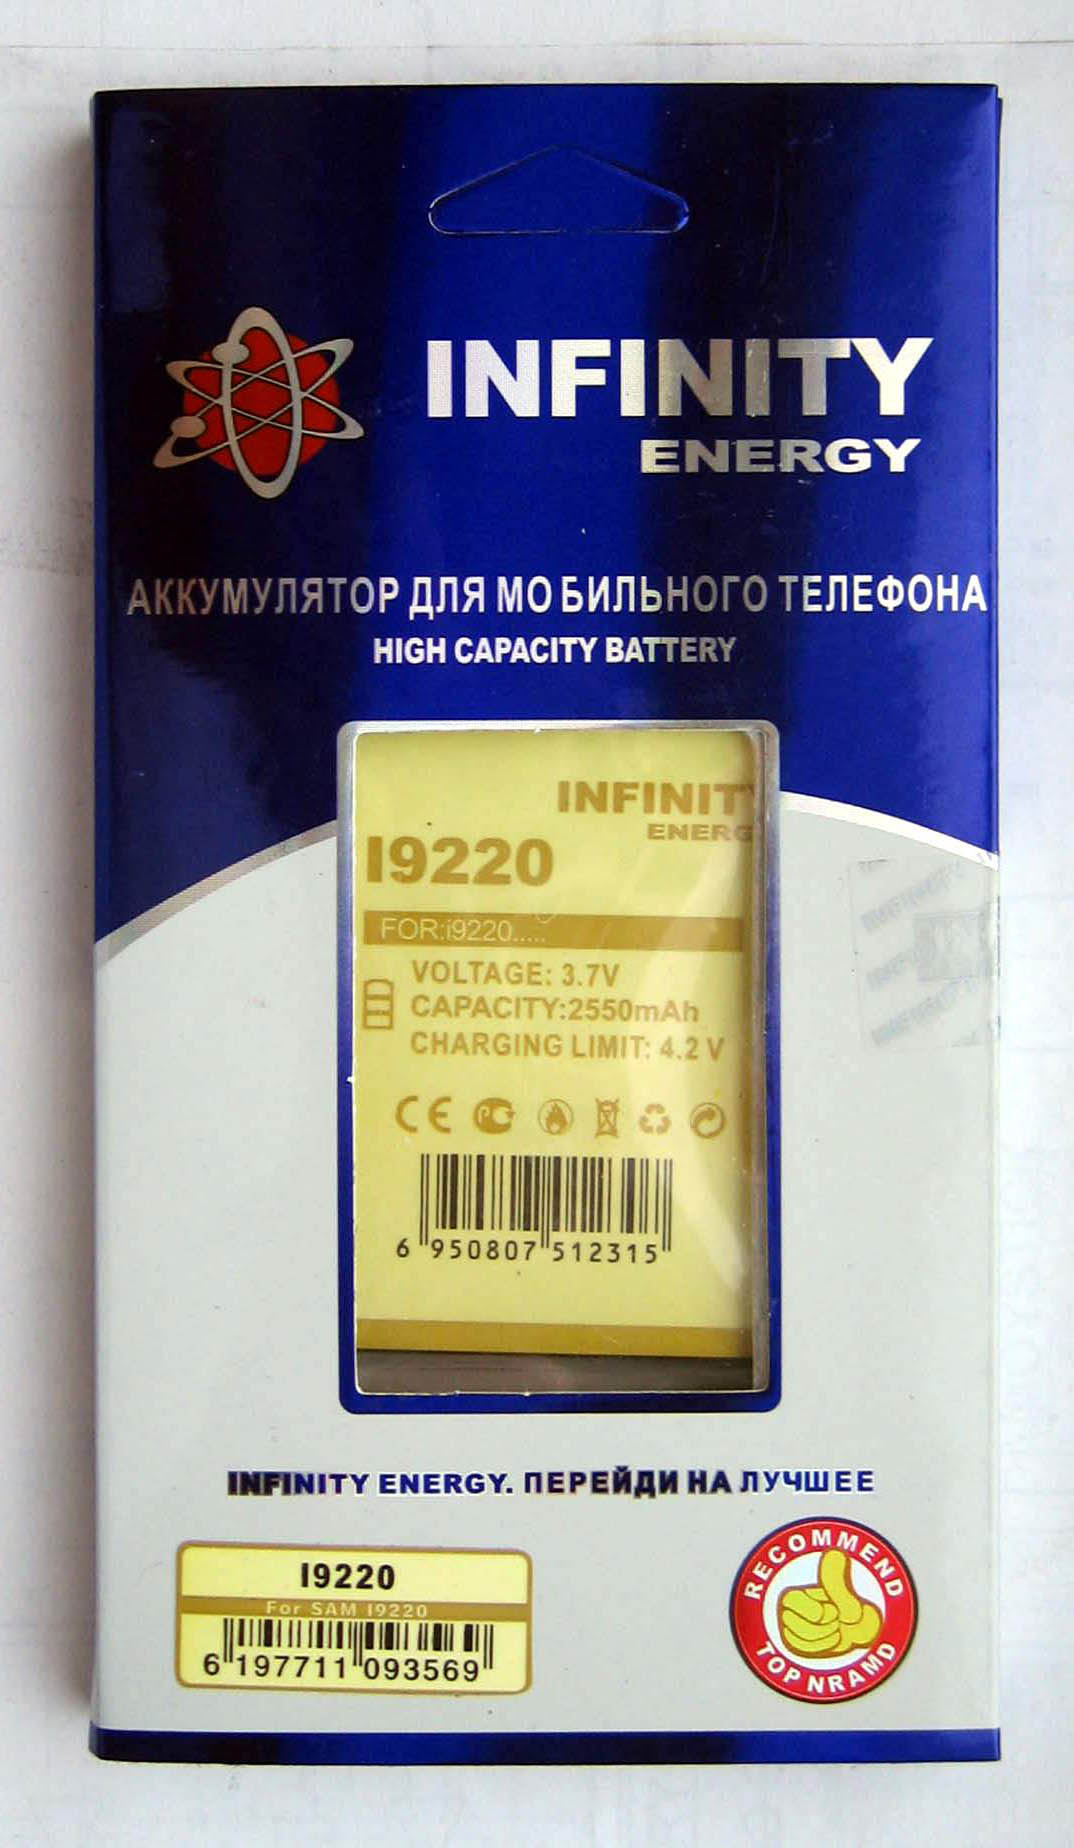 Infinity Energy pack front